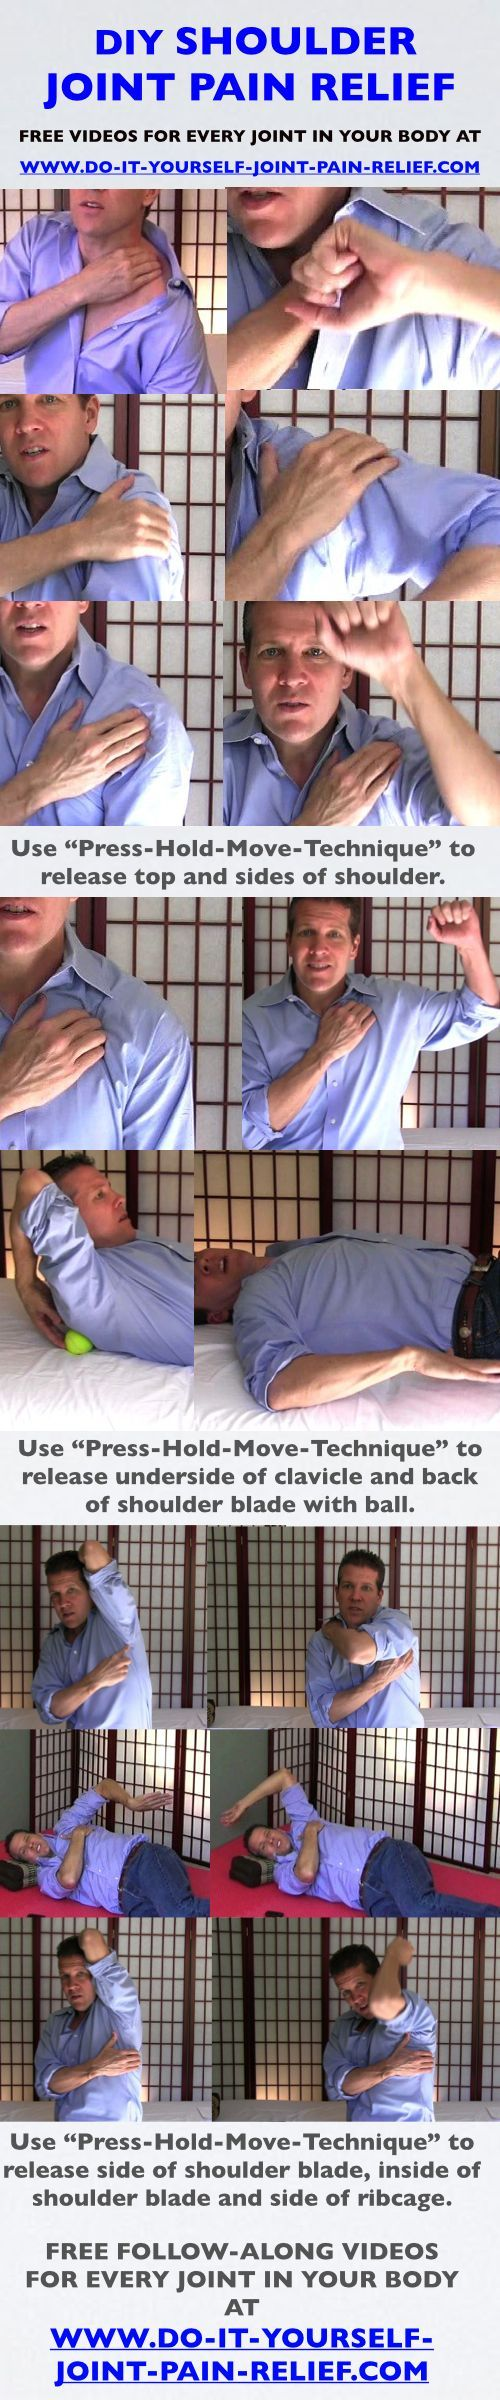 DIY Shoulder Joint Pain Relief psoas trigger points lower backs